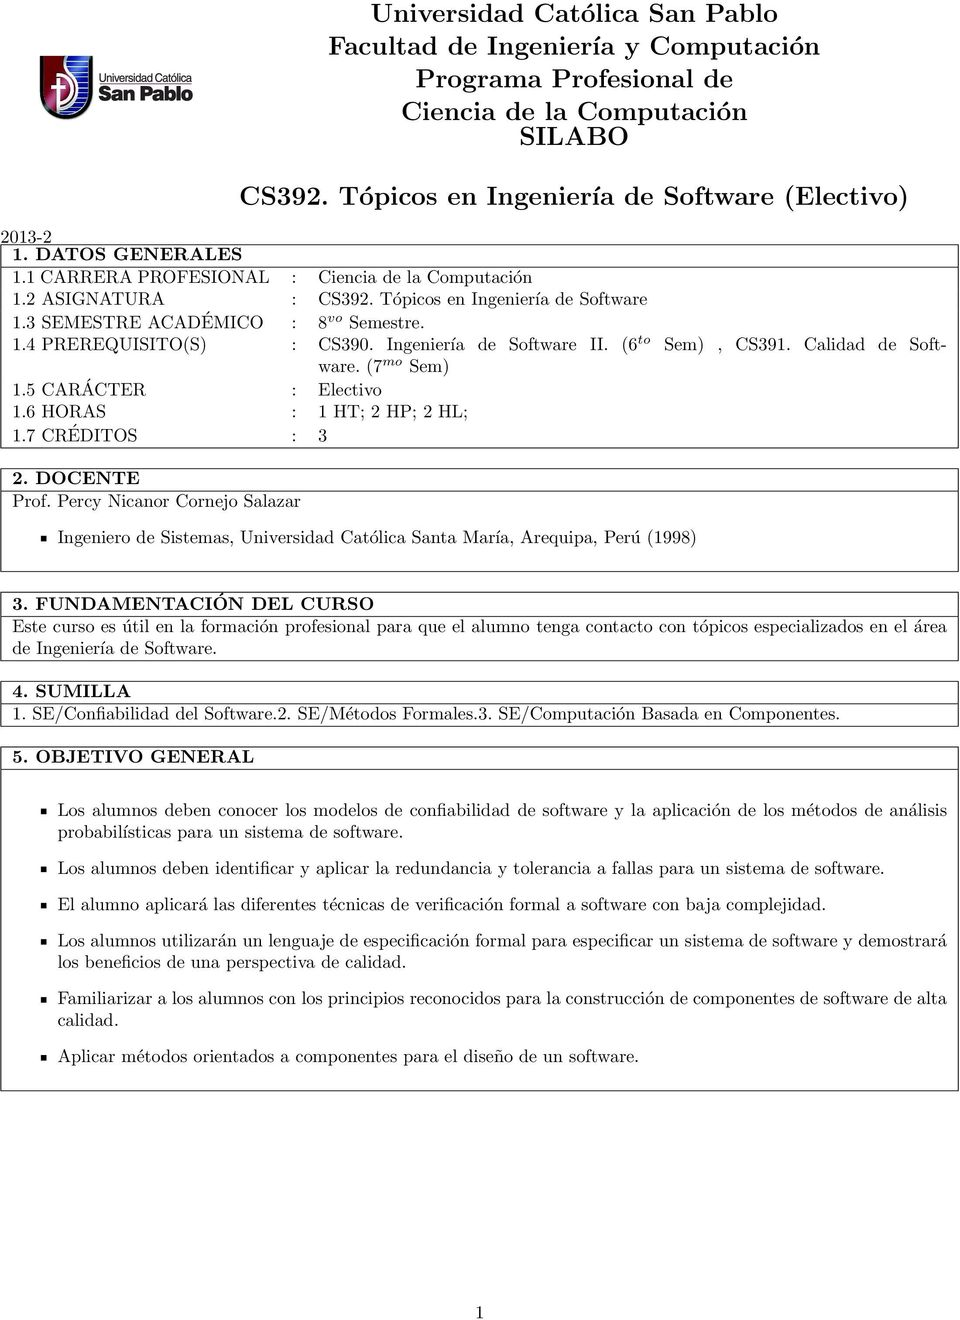 Ingeniería de Software II. (6 to Sem), CS391. Calidad de Software. (7 mo Sem) 1.5 CARÁCTER : Electivo 1.6 HORAS : 1 HT; 2 HP; 2 HL; 1.7 CRÉDITOS : 3 2. DOCENTE Prof.